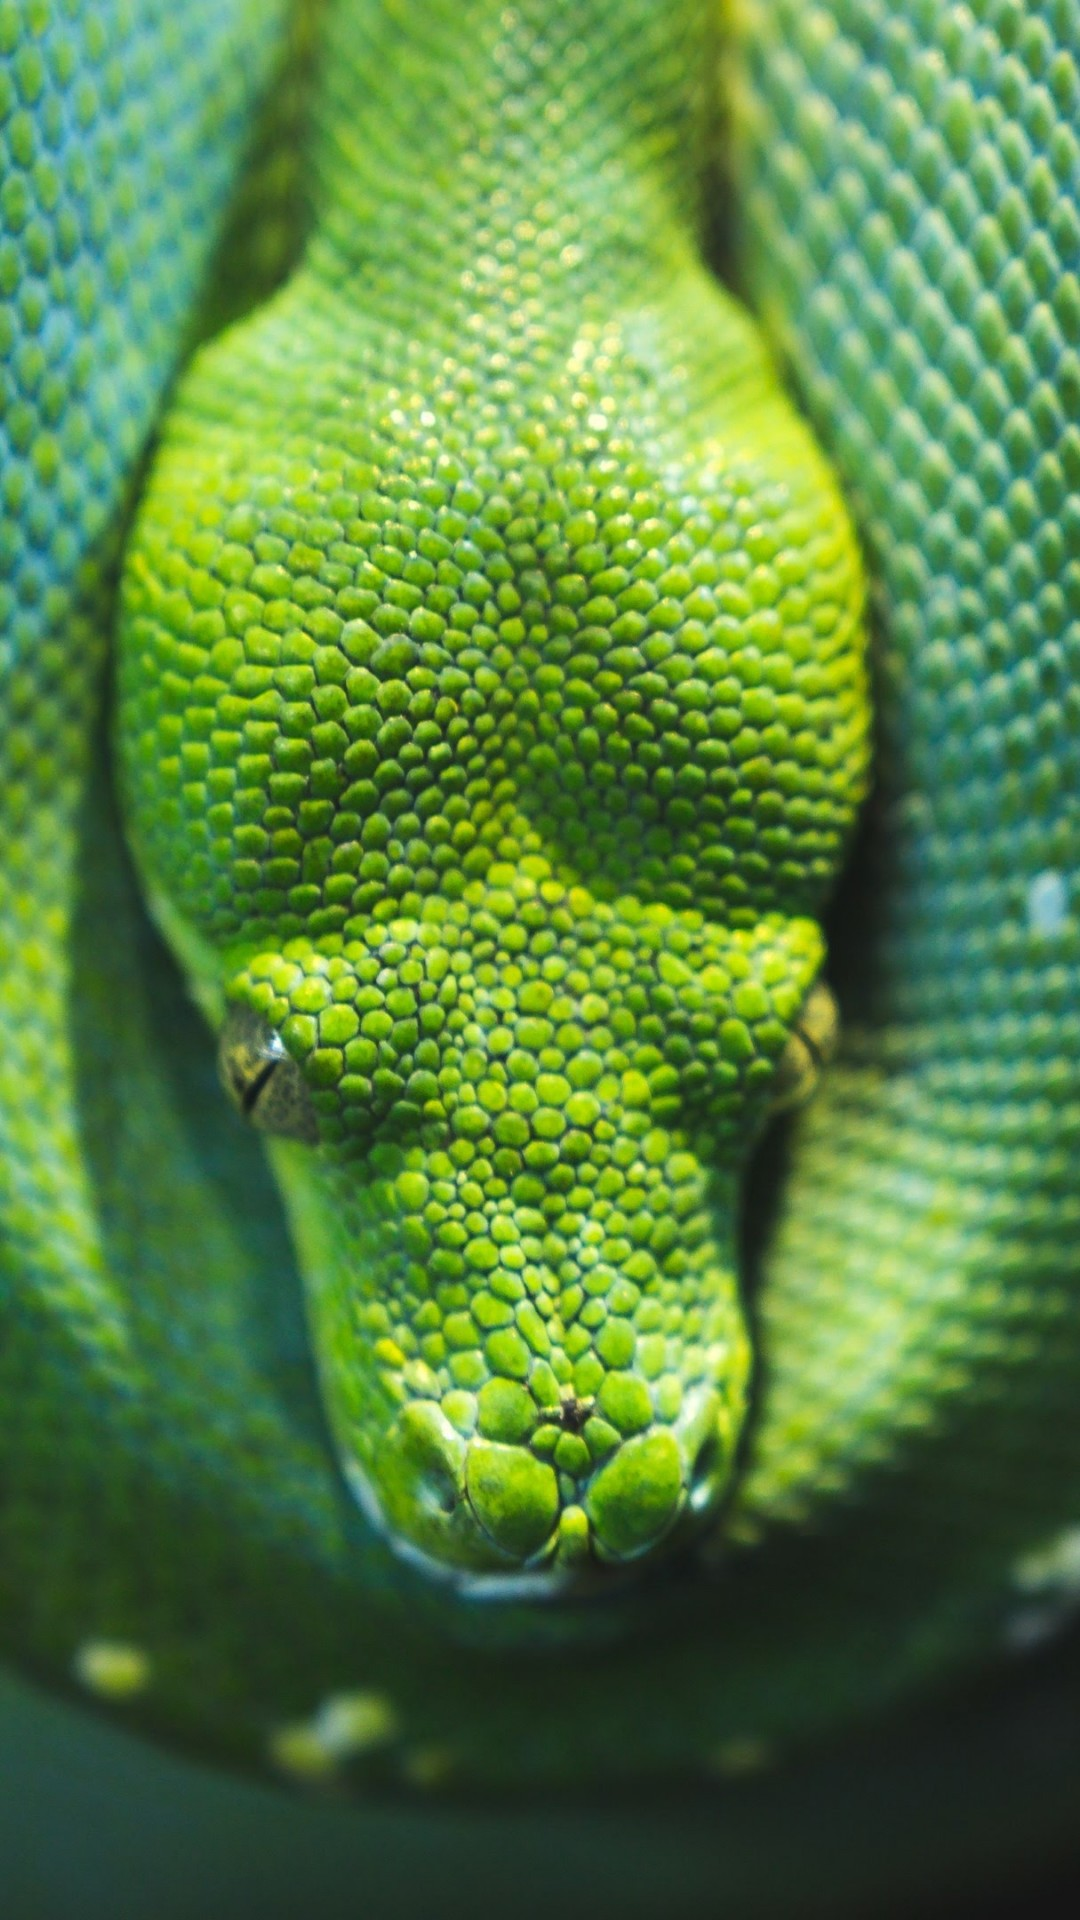 Green Tree Python Snake Hd Wallpaper For Desktop And Mobiles IPhone